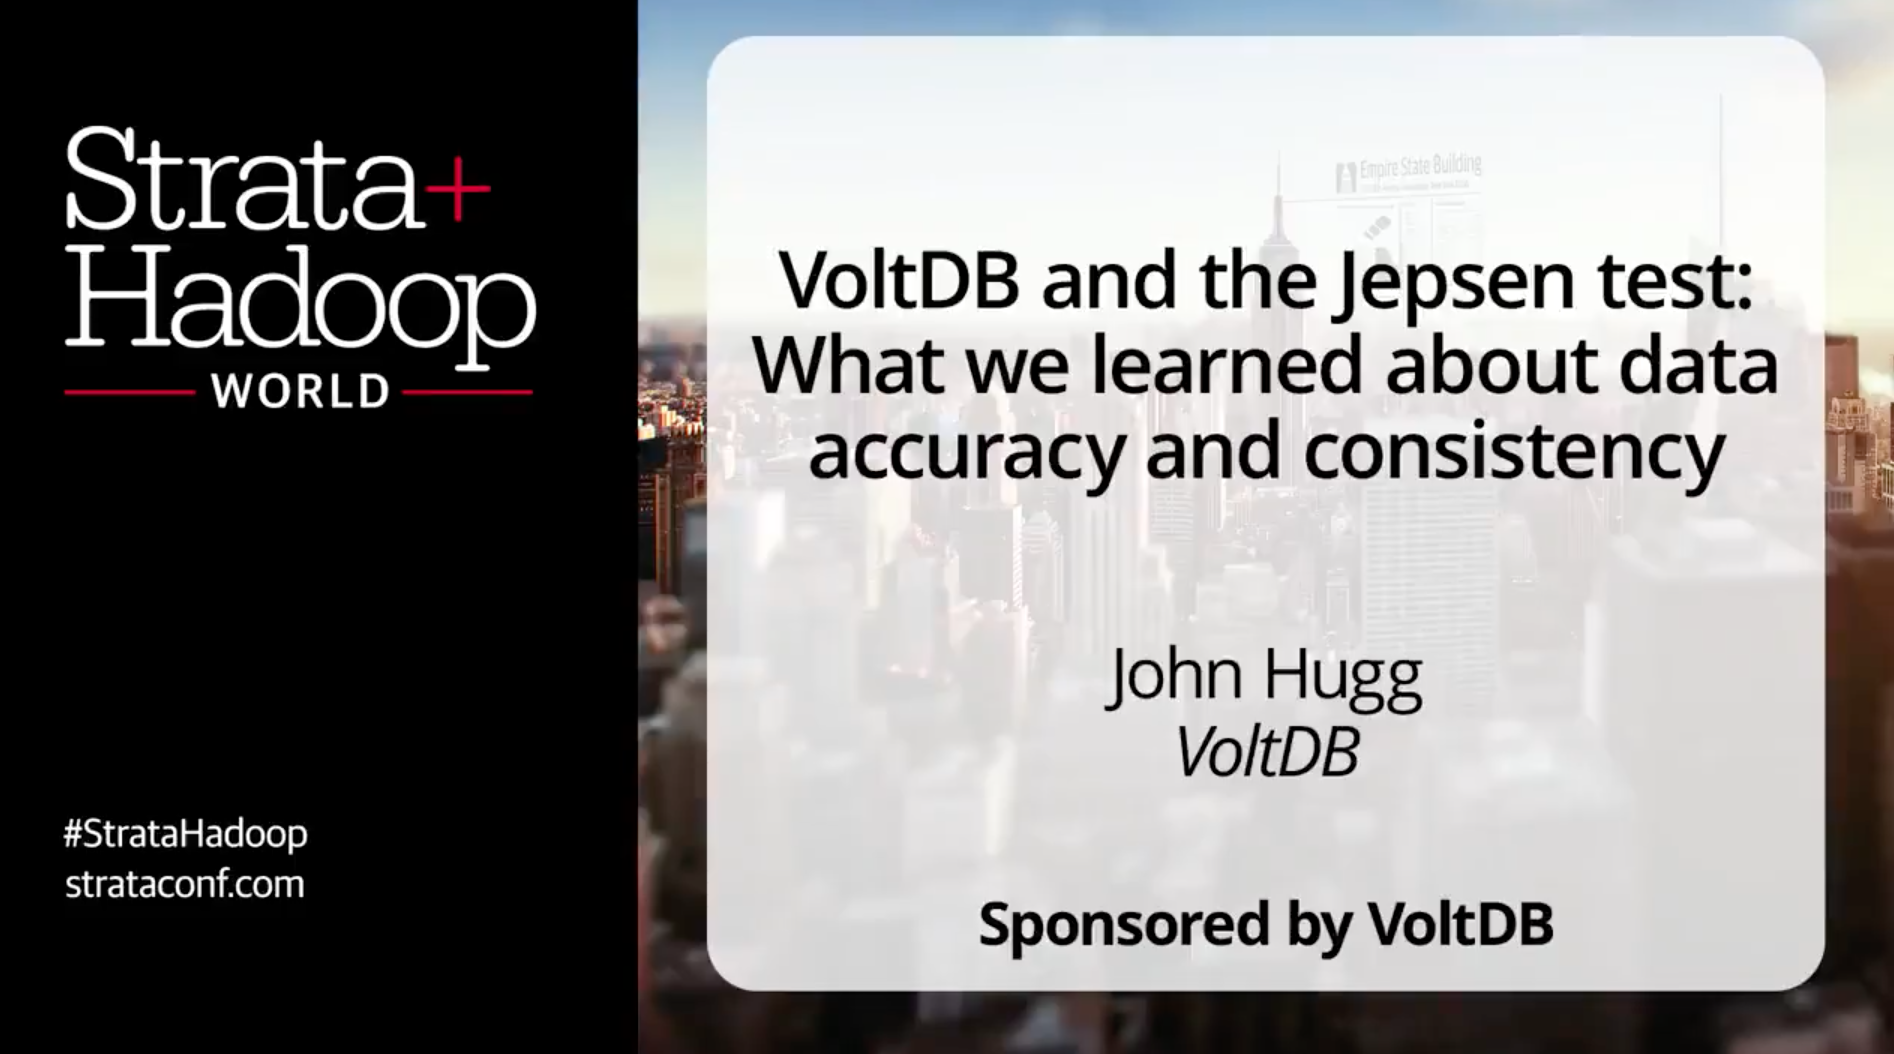 VoltDB and the Jepsen test: What we learned about data accuracy and consistency